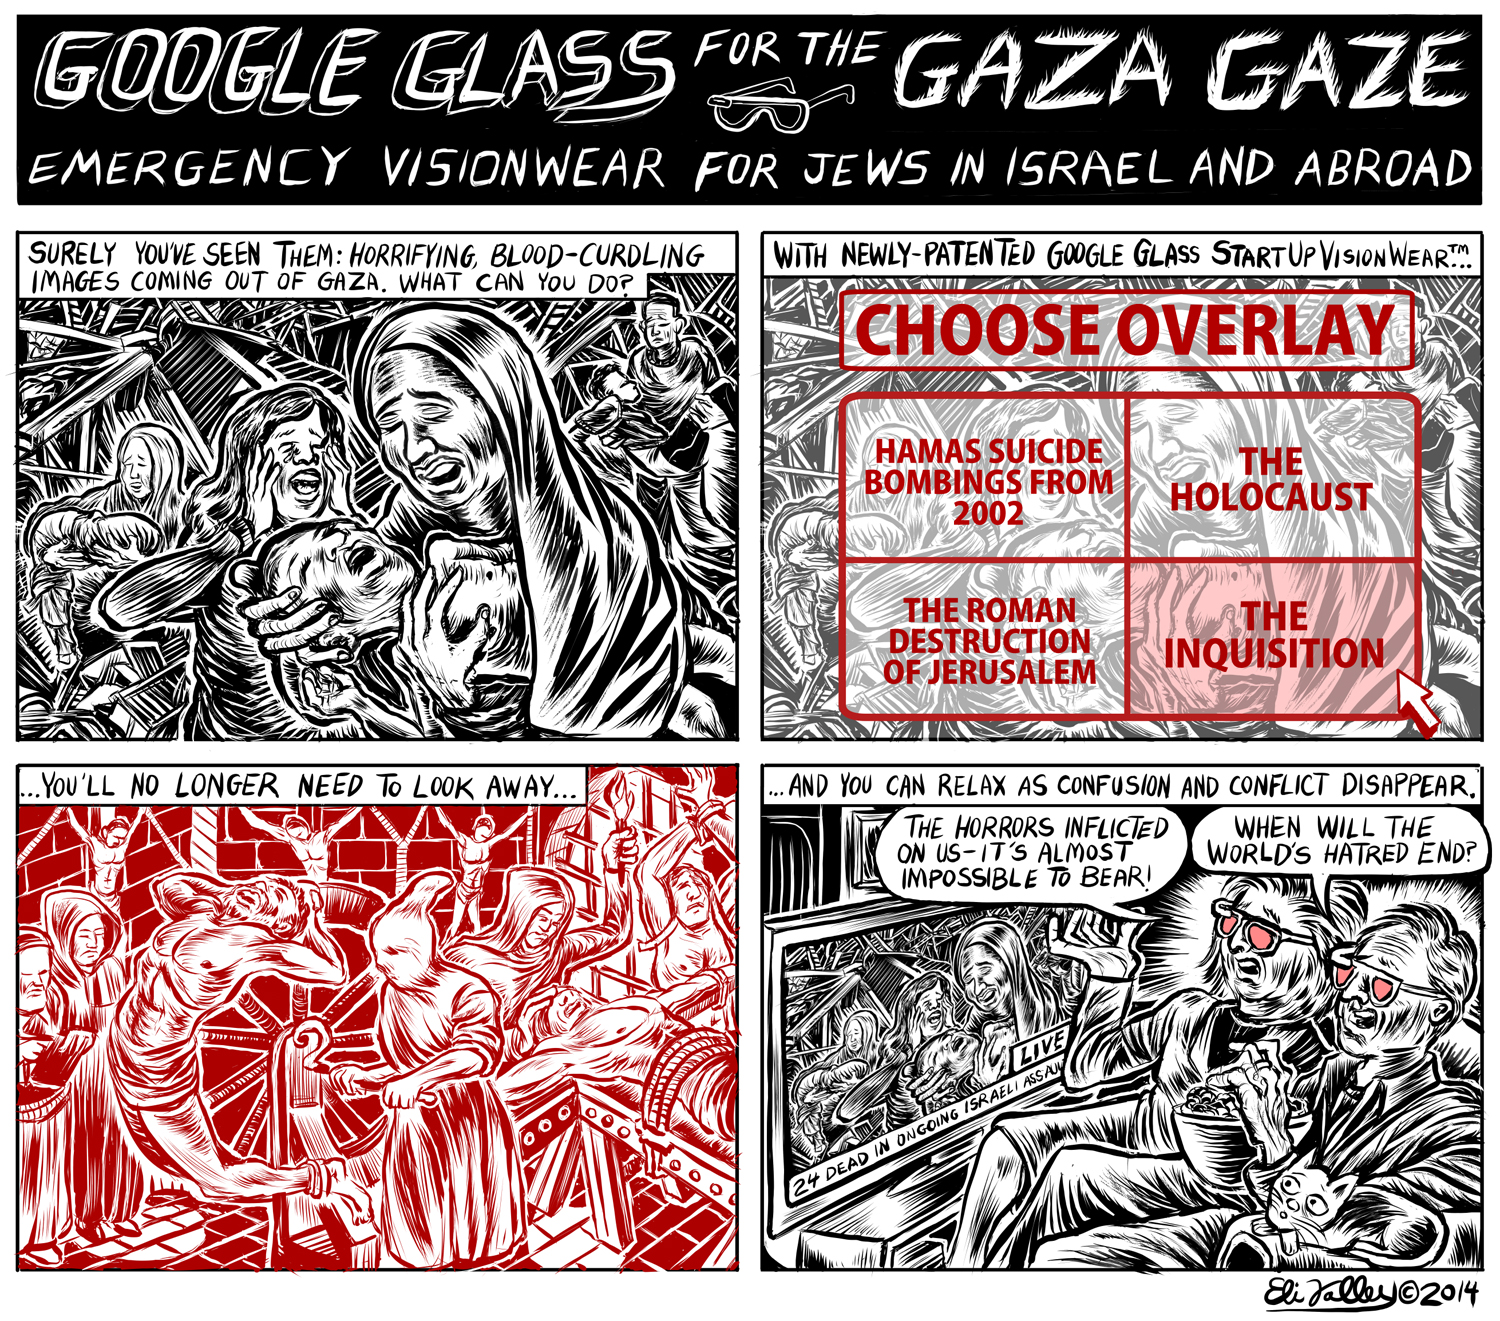 Google Glass For The Gaza Gaze. +972 Magazine, 7/25/14